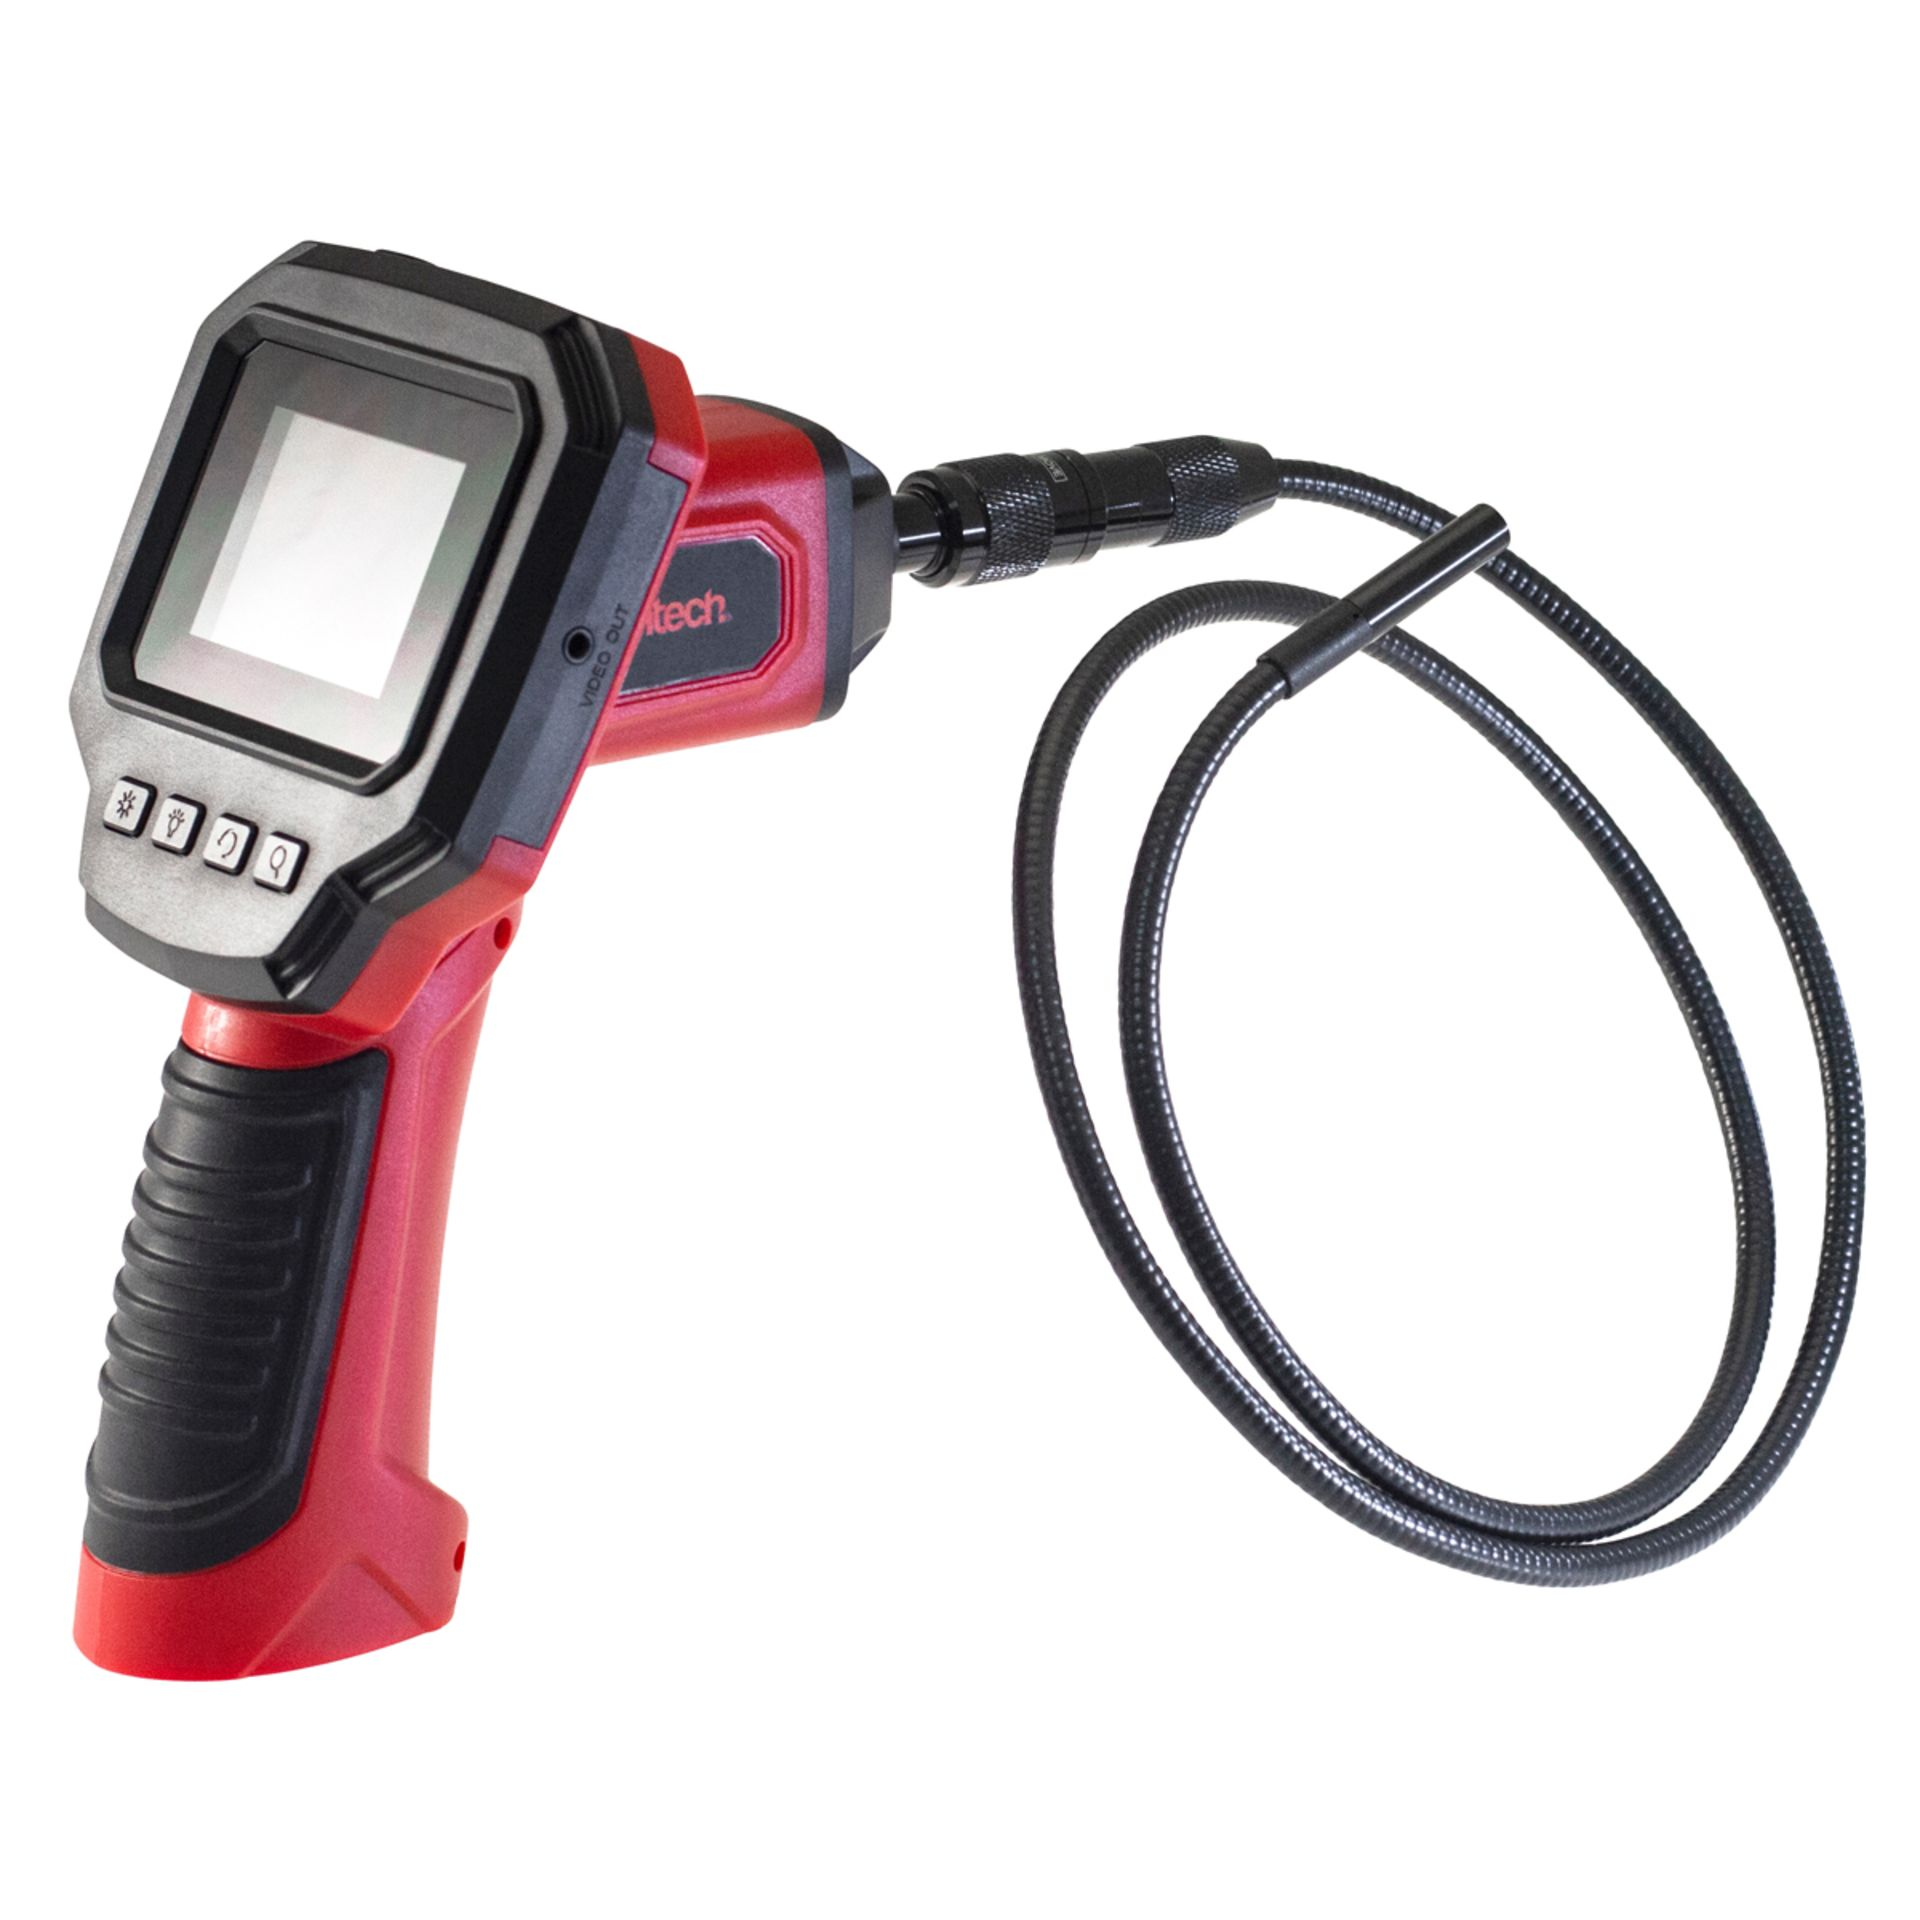 Lot 11456 - V Brand New 2.4 Inch Colour LCD Inspection Camera - Adjustable Backlit LED Screen